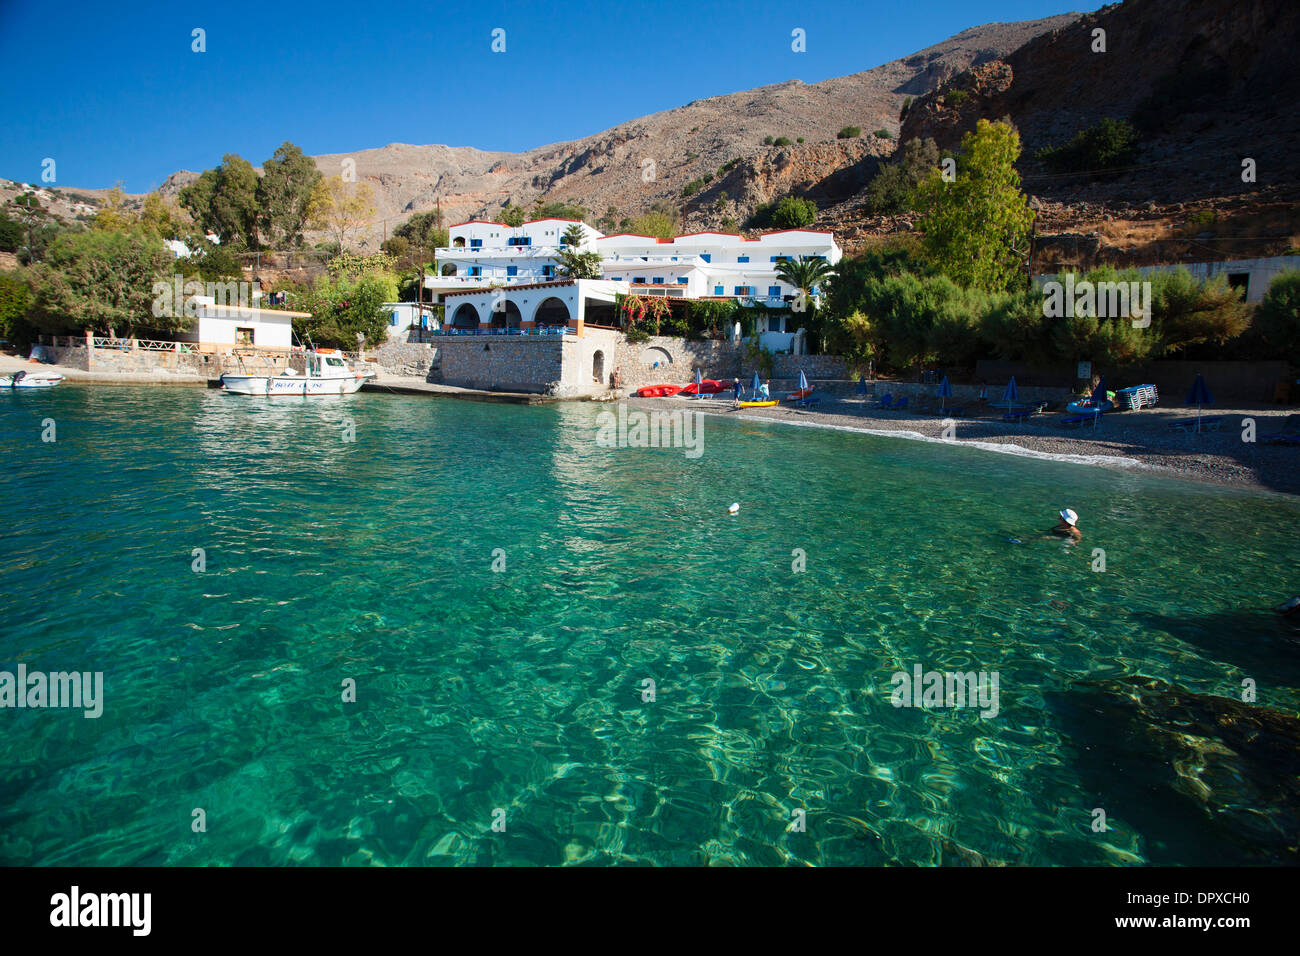 The hamlet of Finix or Phoenix, near Loutro, Sfakia region, Crete, Greece. - Stock Image